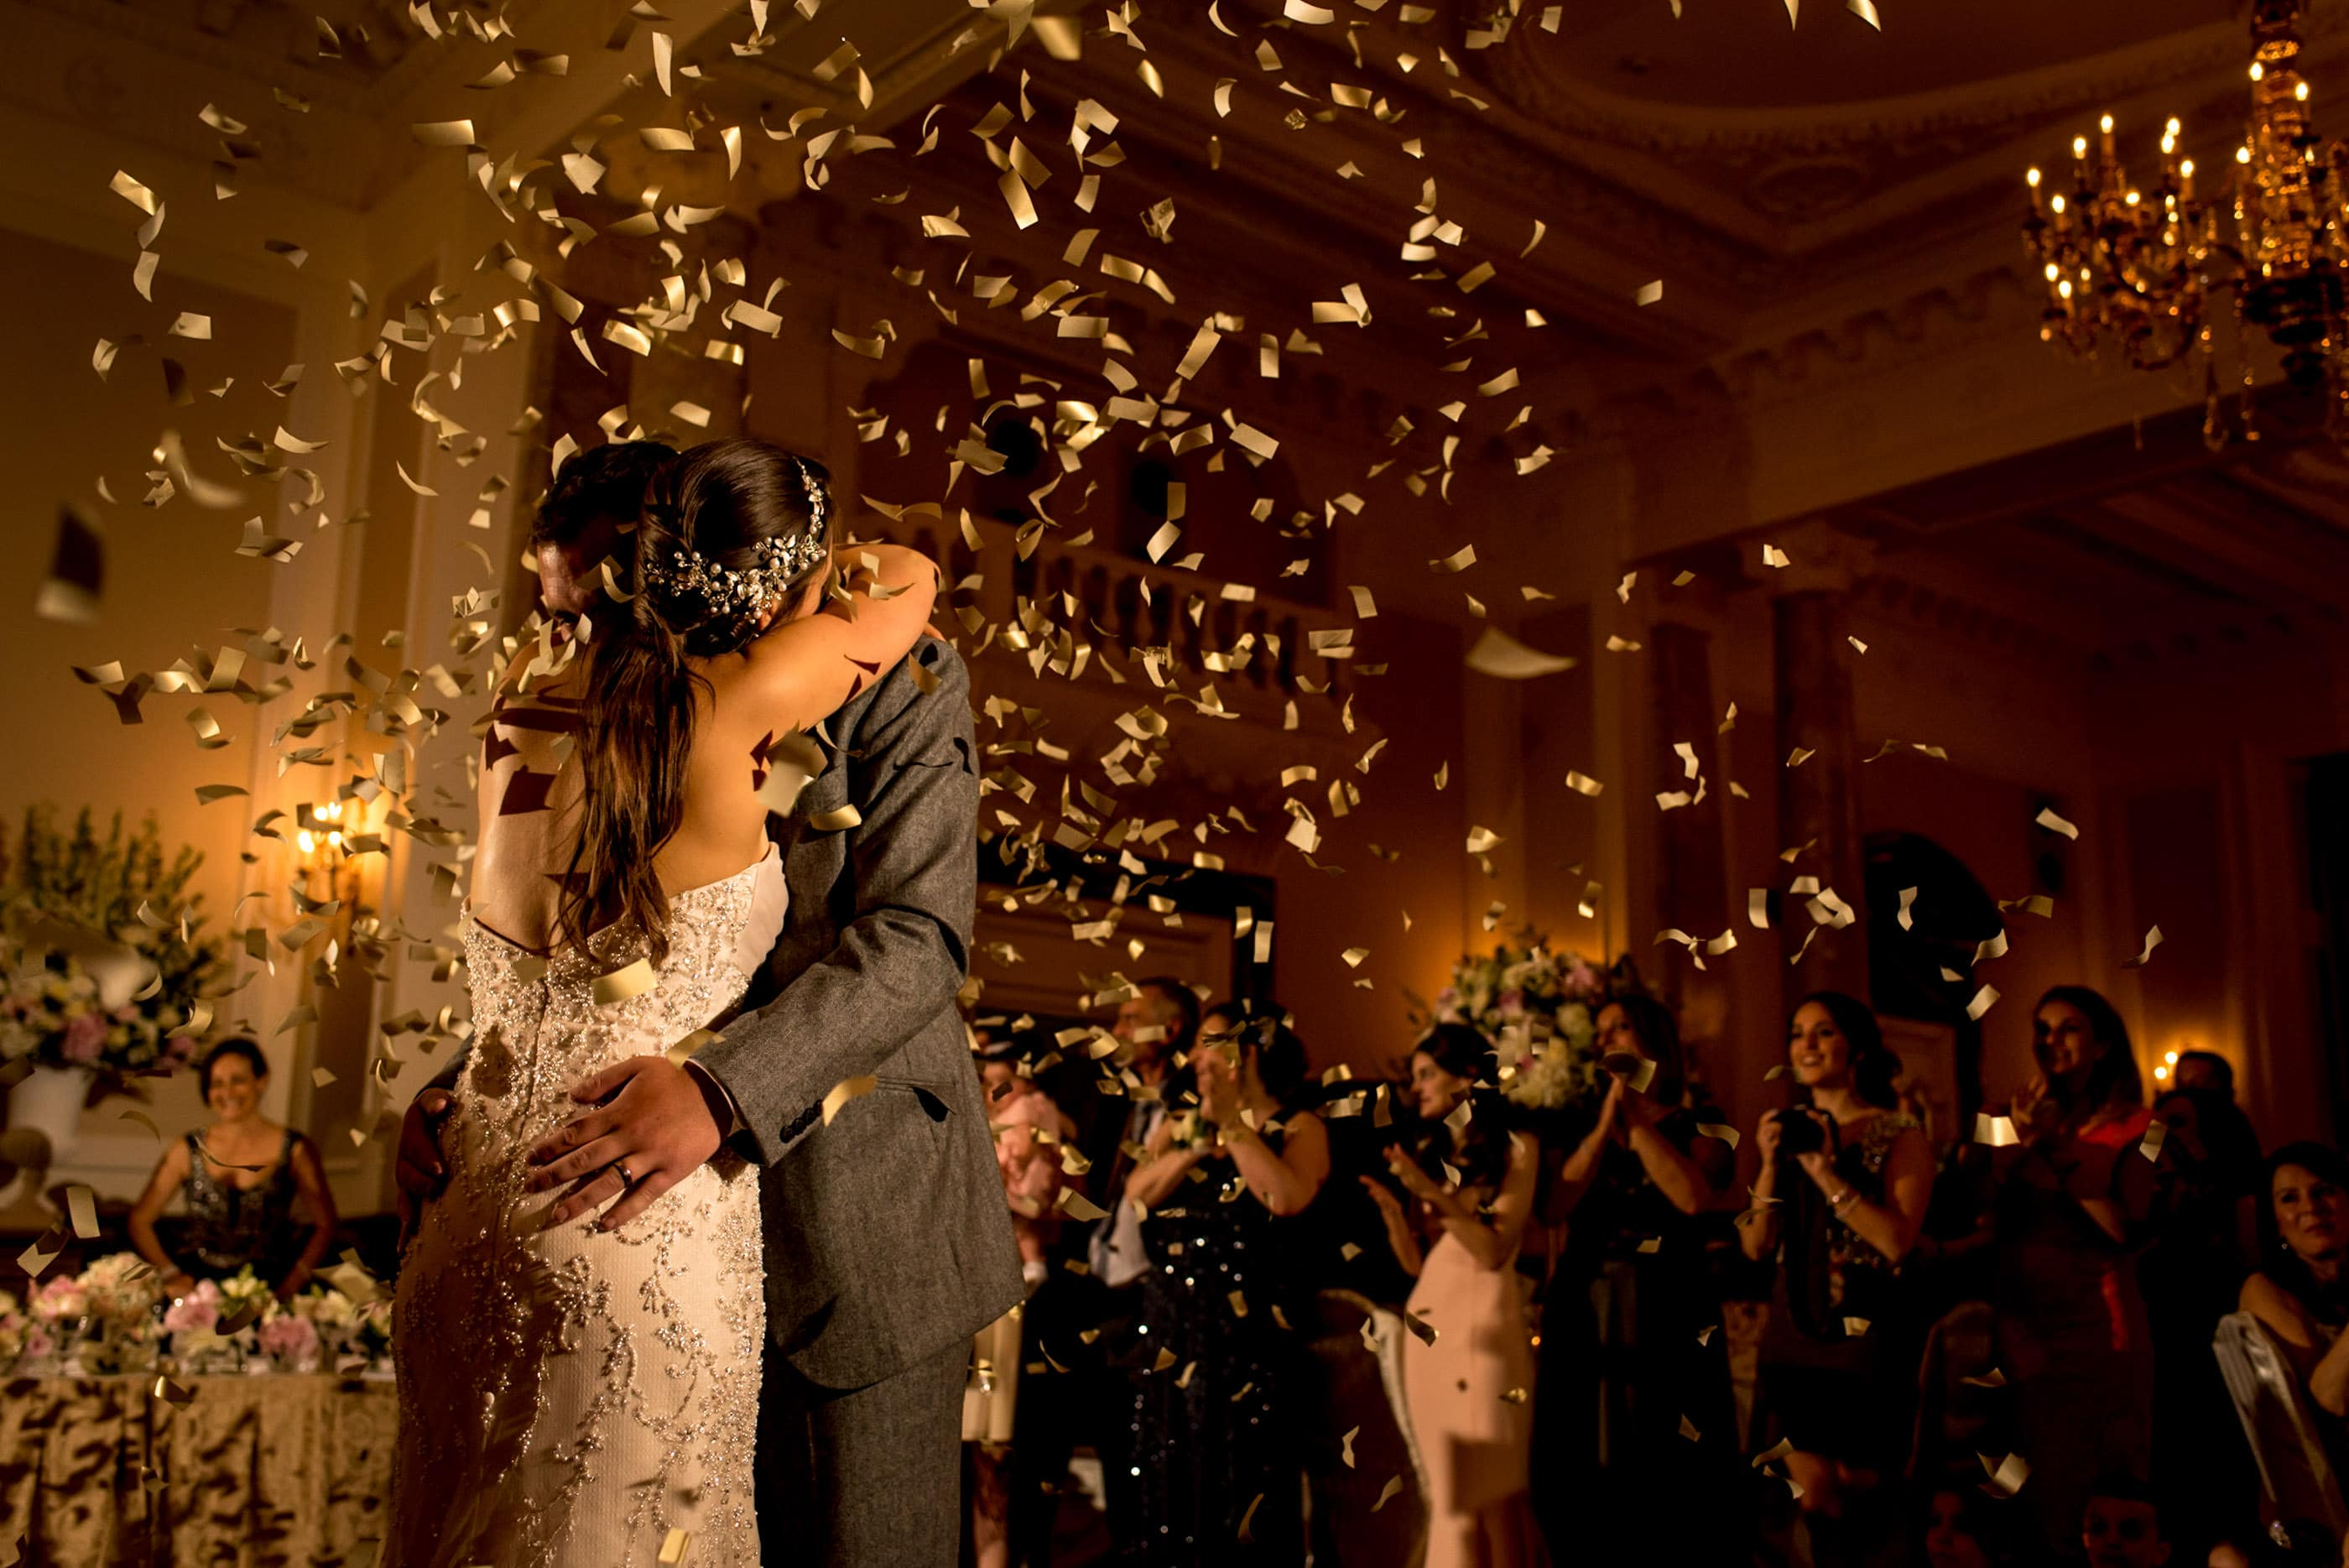 gold confetti cannons firing during the first dance